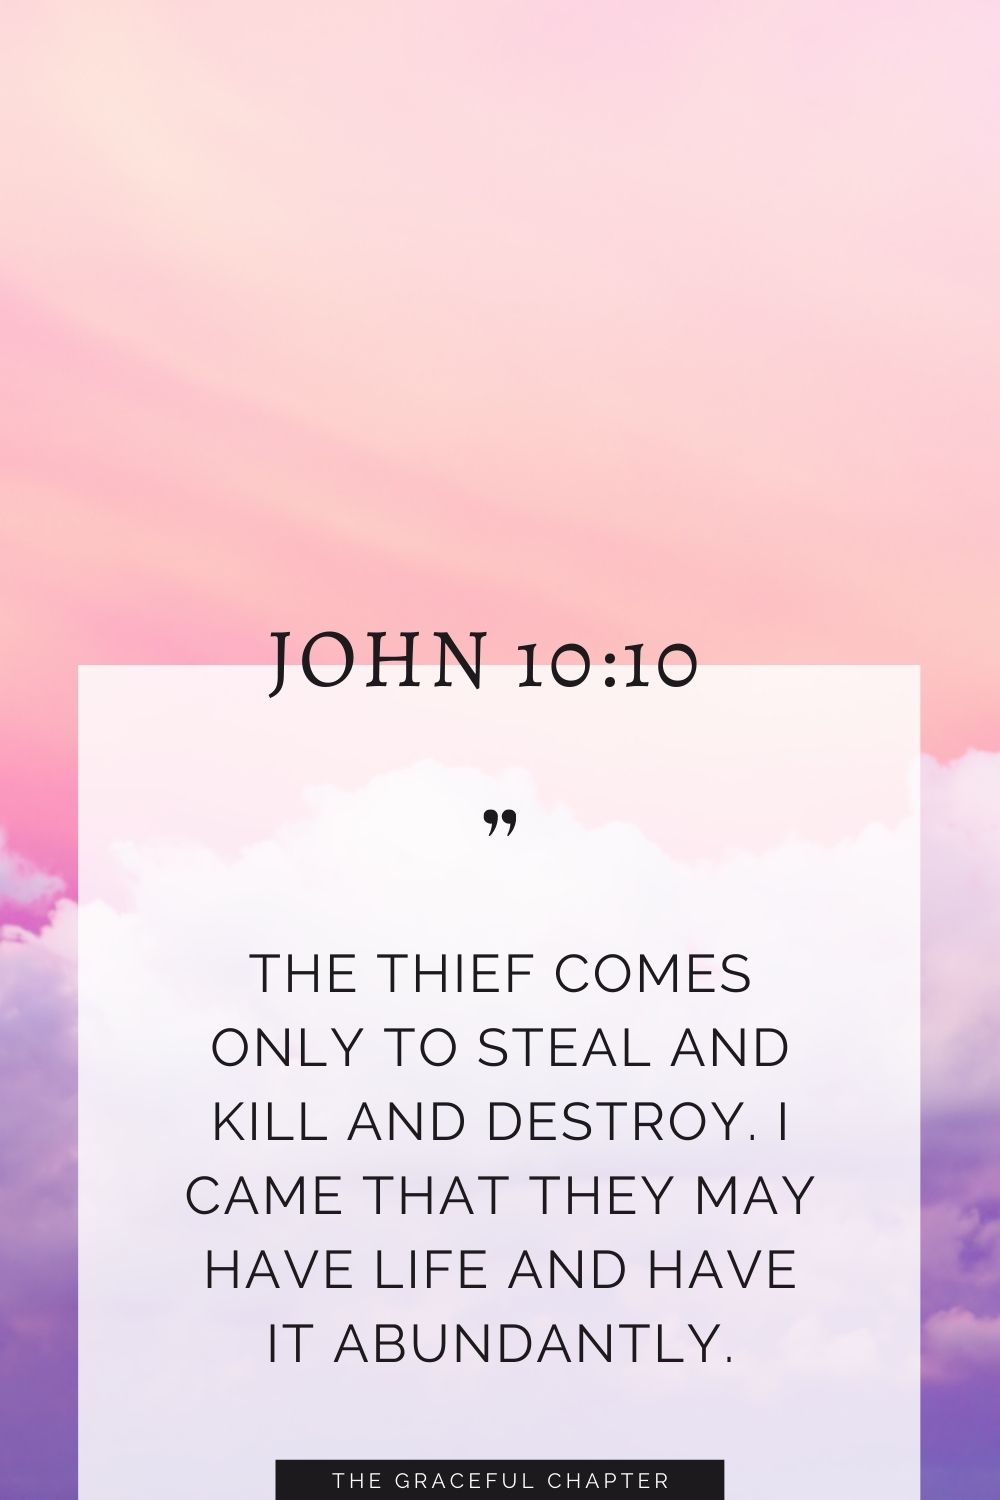 The thief comes only to steal and kill and destroy. I came that they may have life and have it abundantly. John 10:10